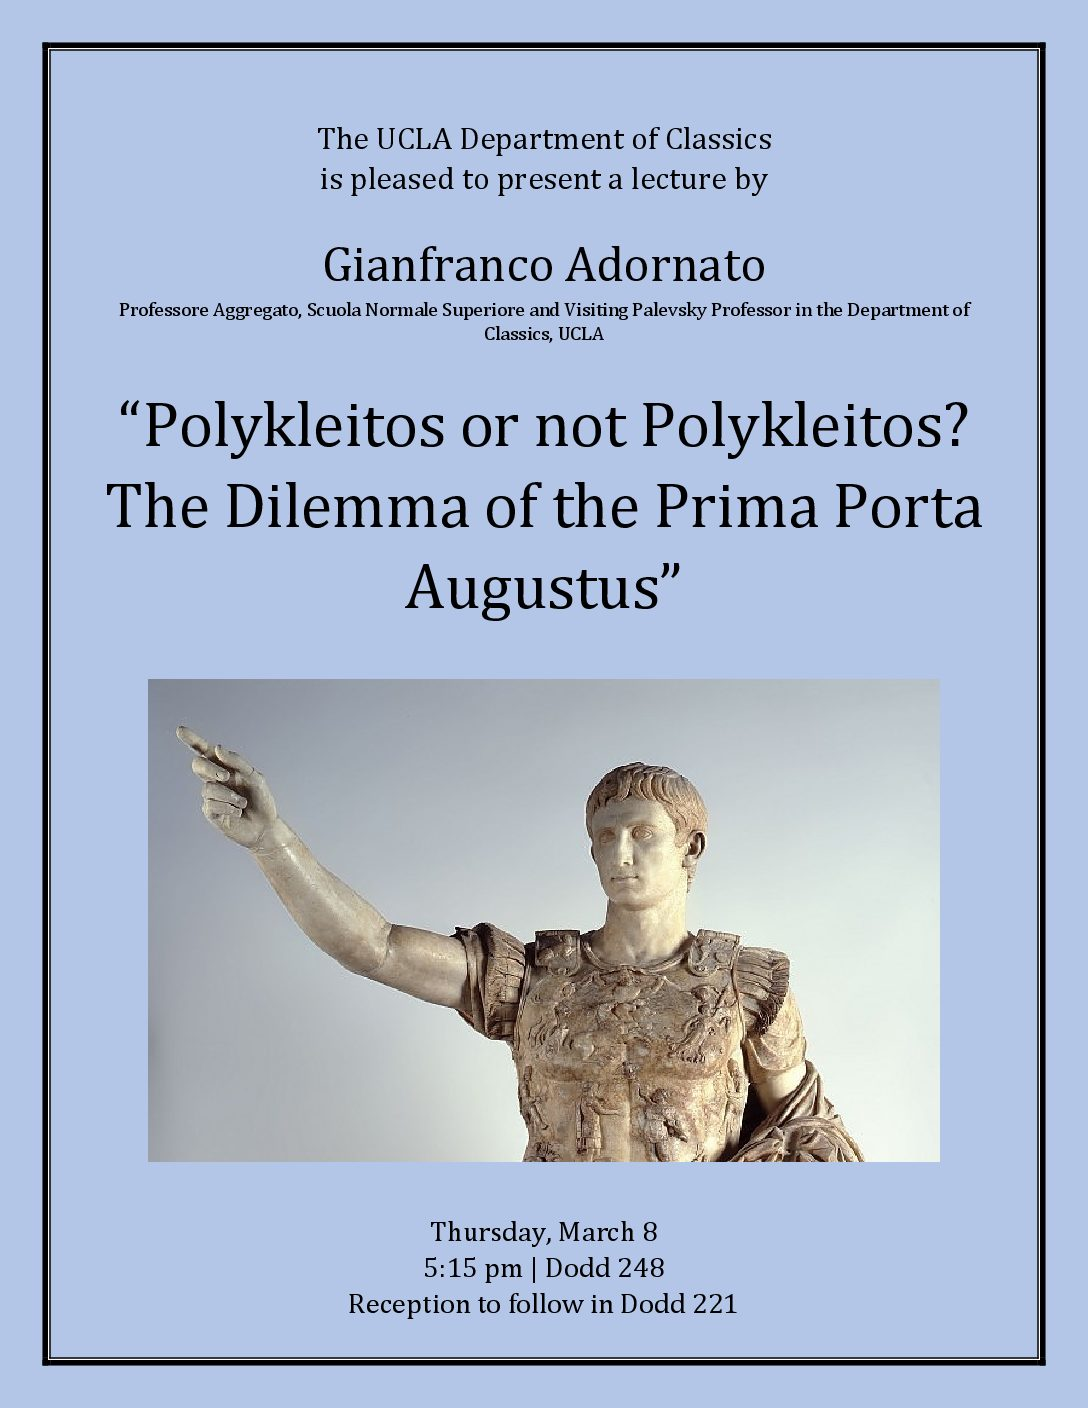 Prof. Adornato, coordinator of the Oltreplinio Project, will take a lecture on the Prima Porta Augustus at UCLA